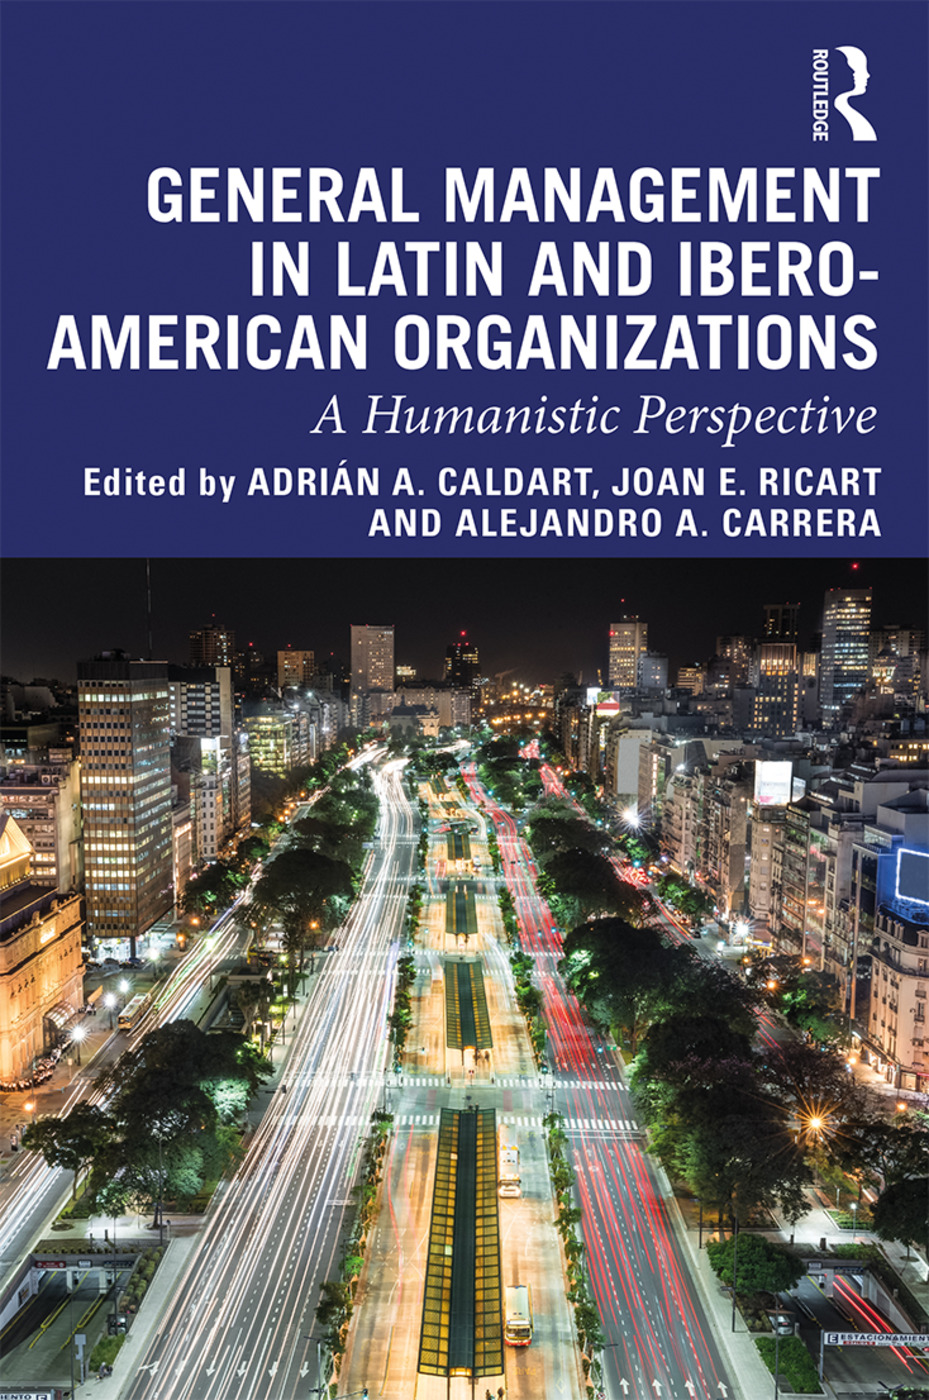 General Management in Latin and Ibero-American Organizations: A Humanistic Perspective book cover